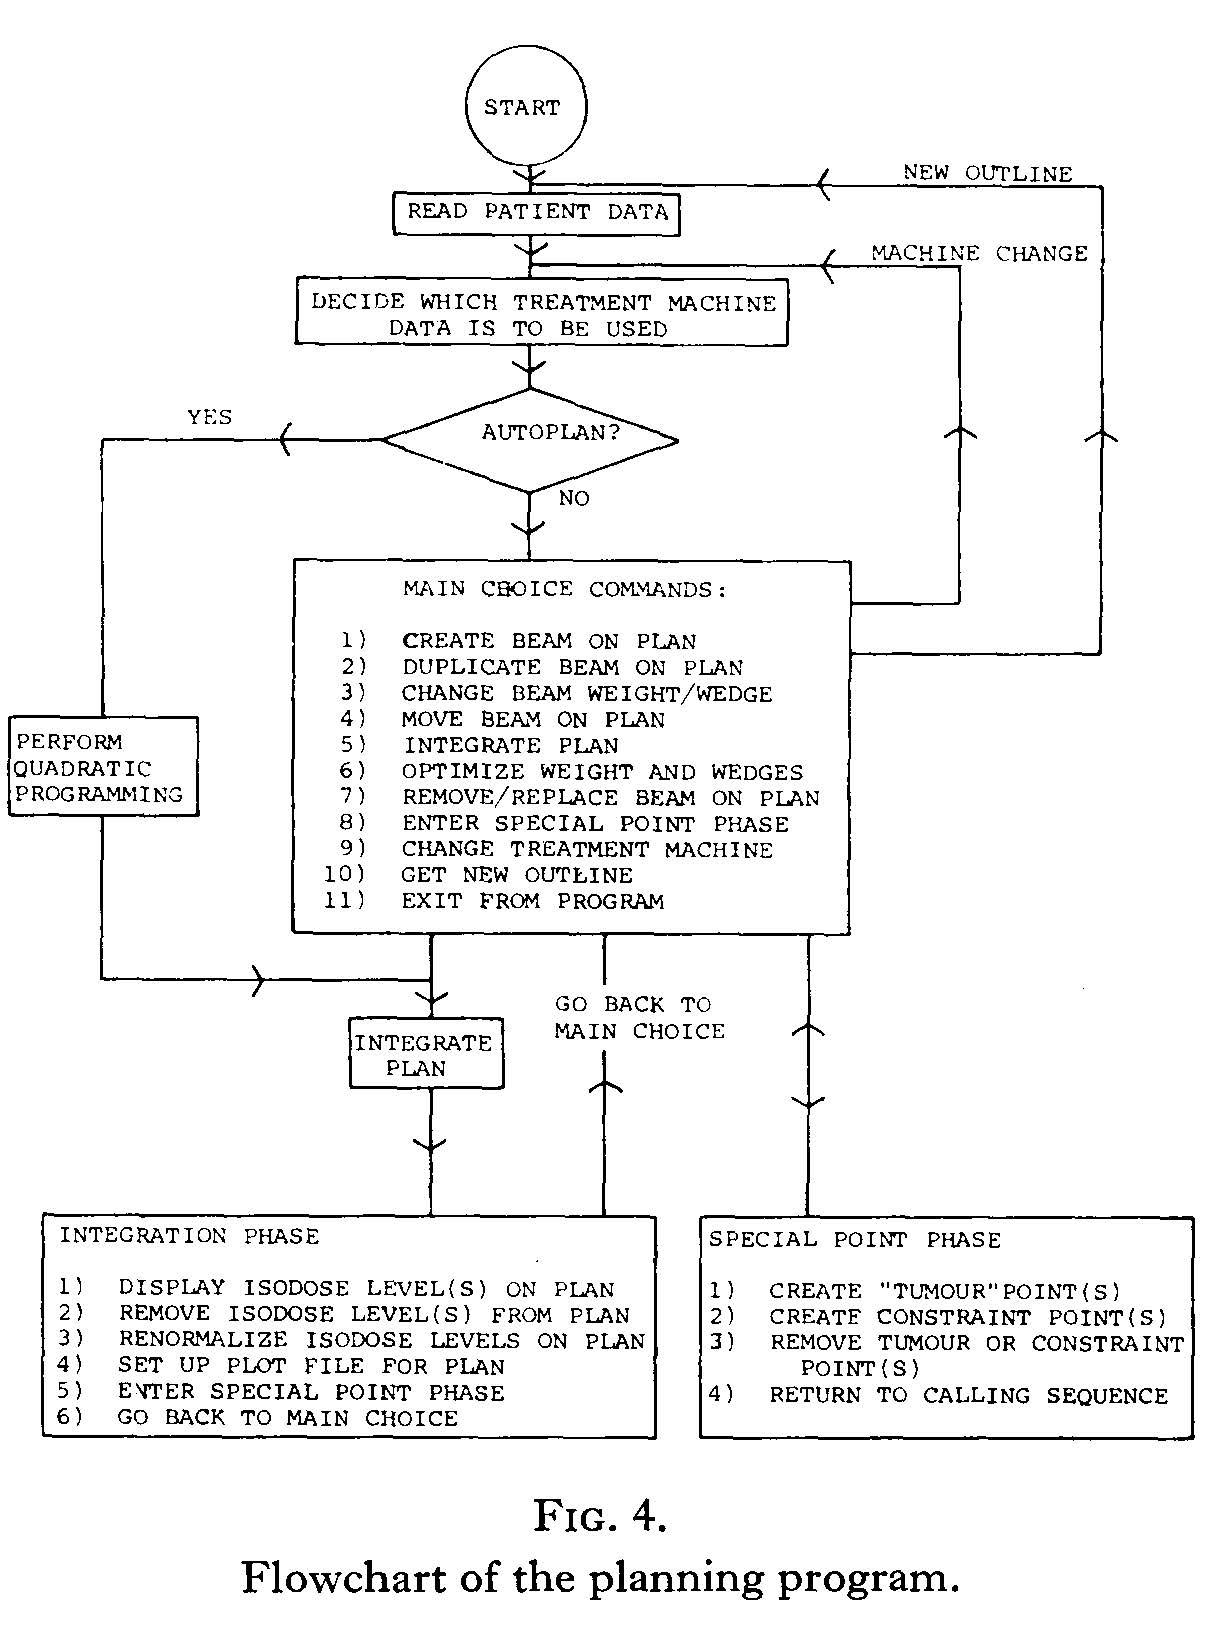 Flowchart of radiotherapy planning program